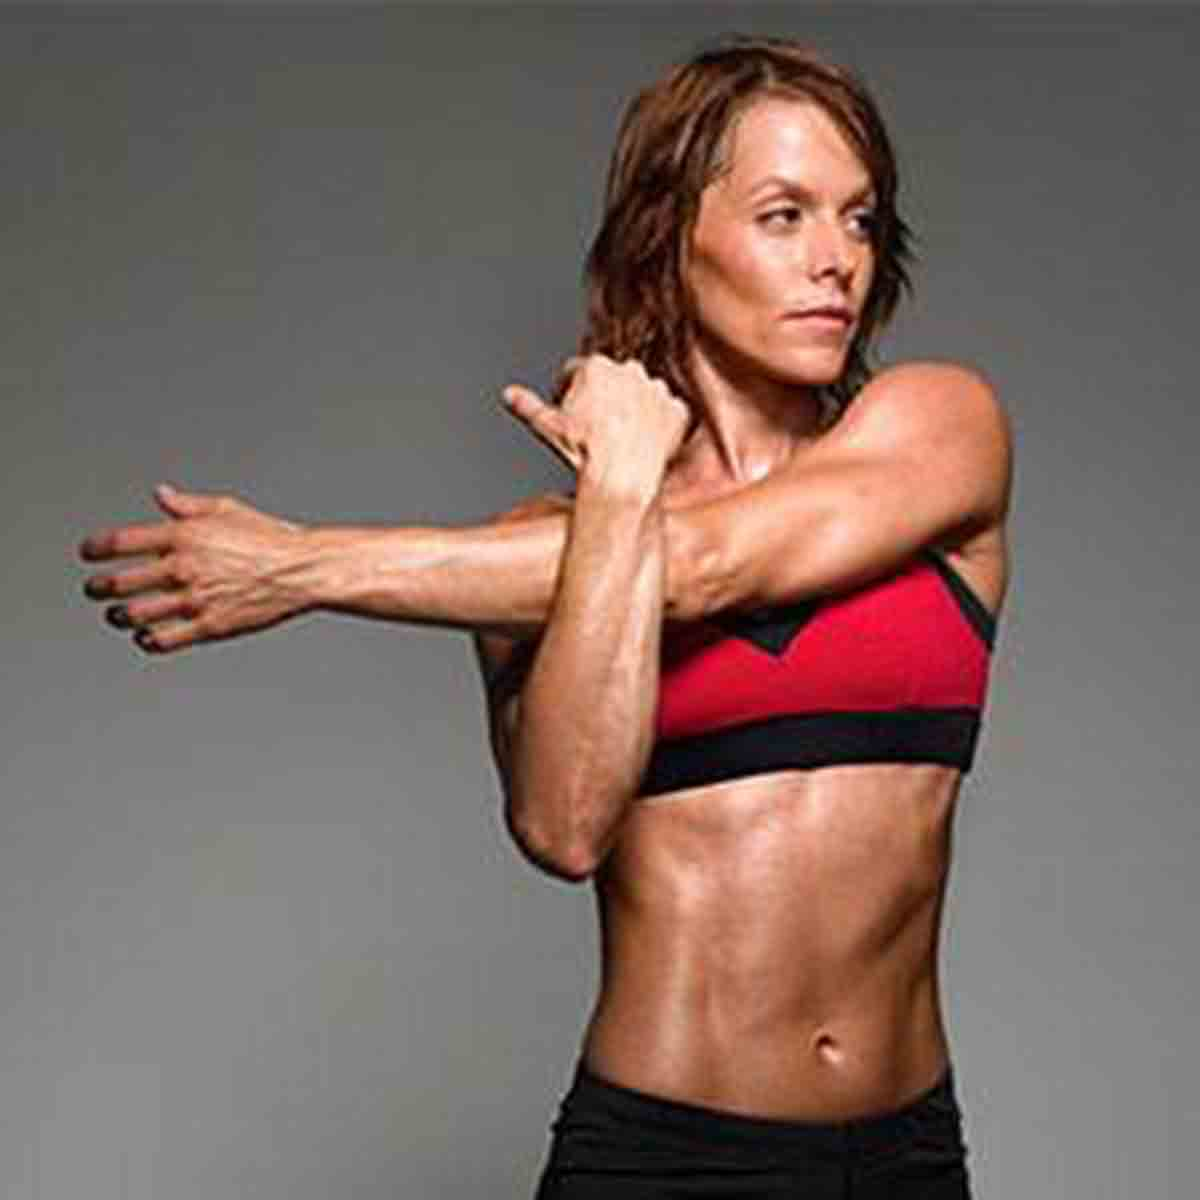 Muscle Mass and Body Composition, woman stretching inducing metabolism